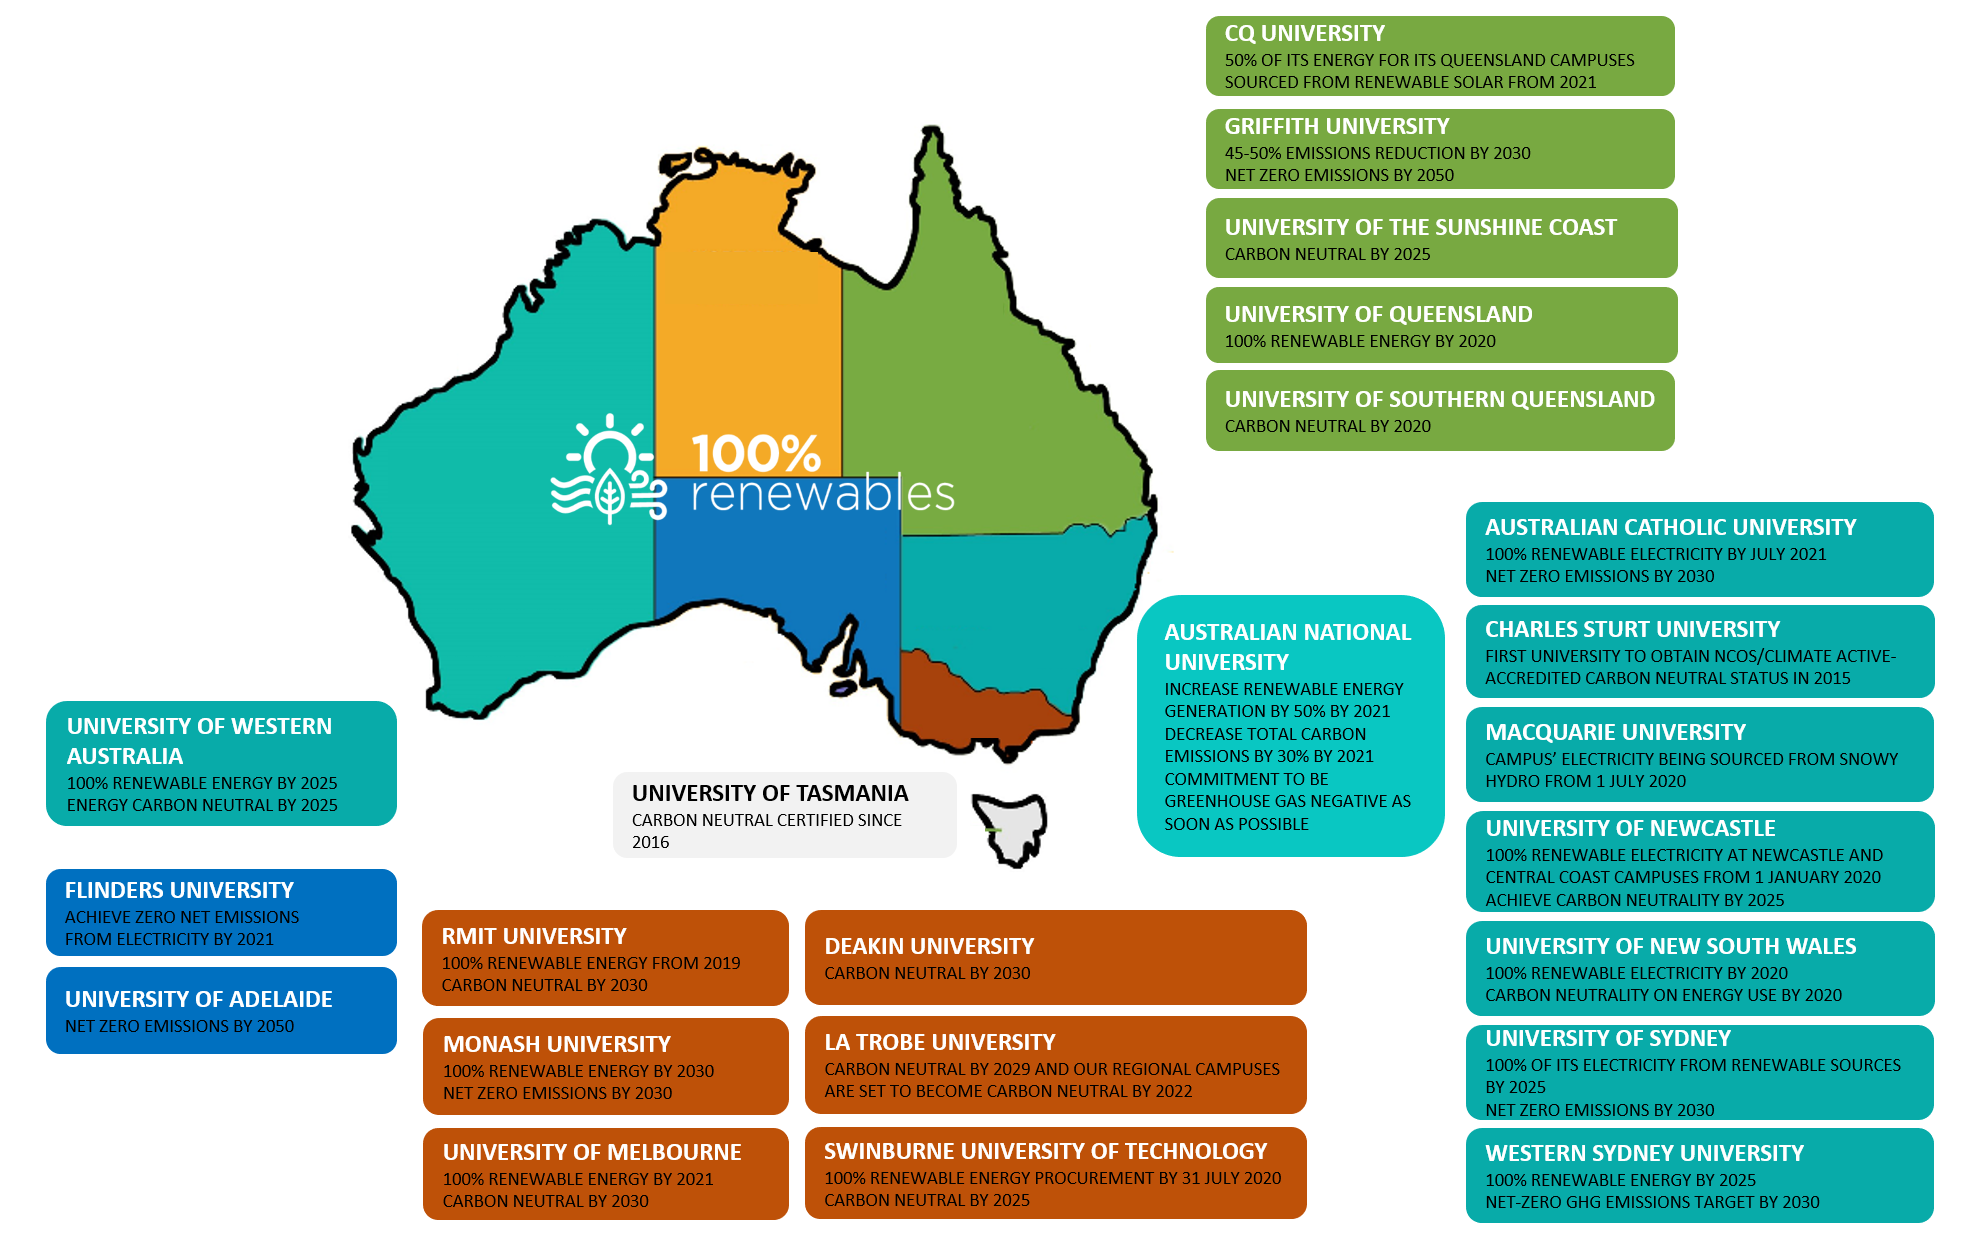 Carbon neutral, net zero and 100% renewables commitments by Australian universities as at Feb 2021 (map)